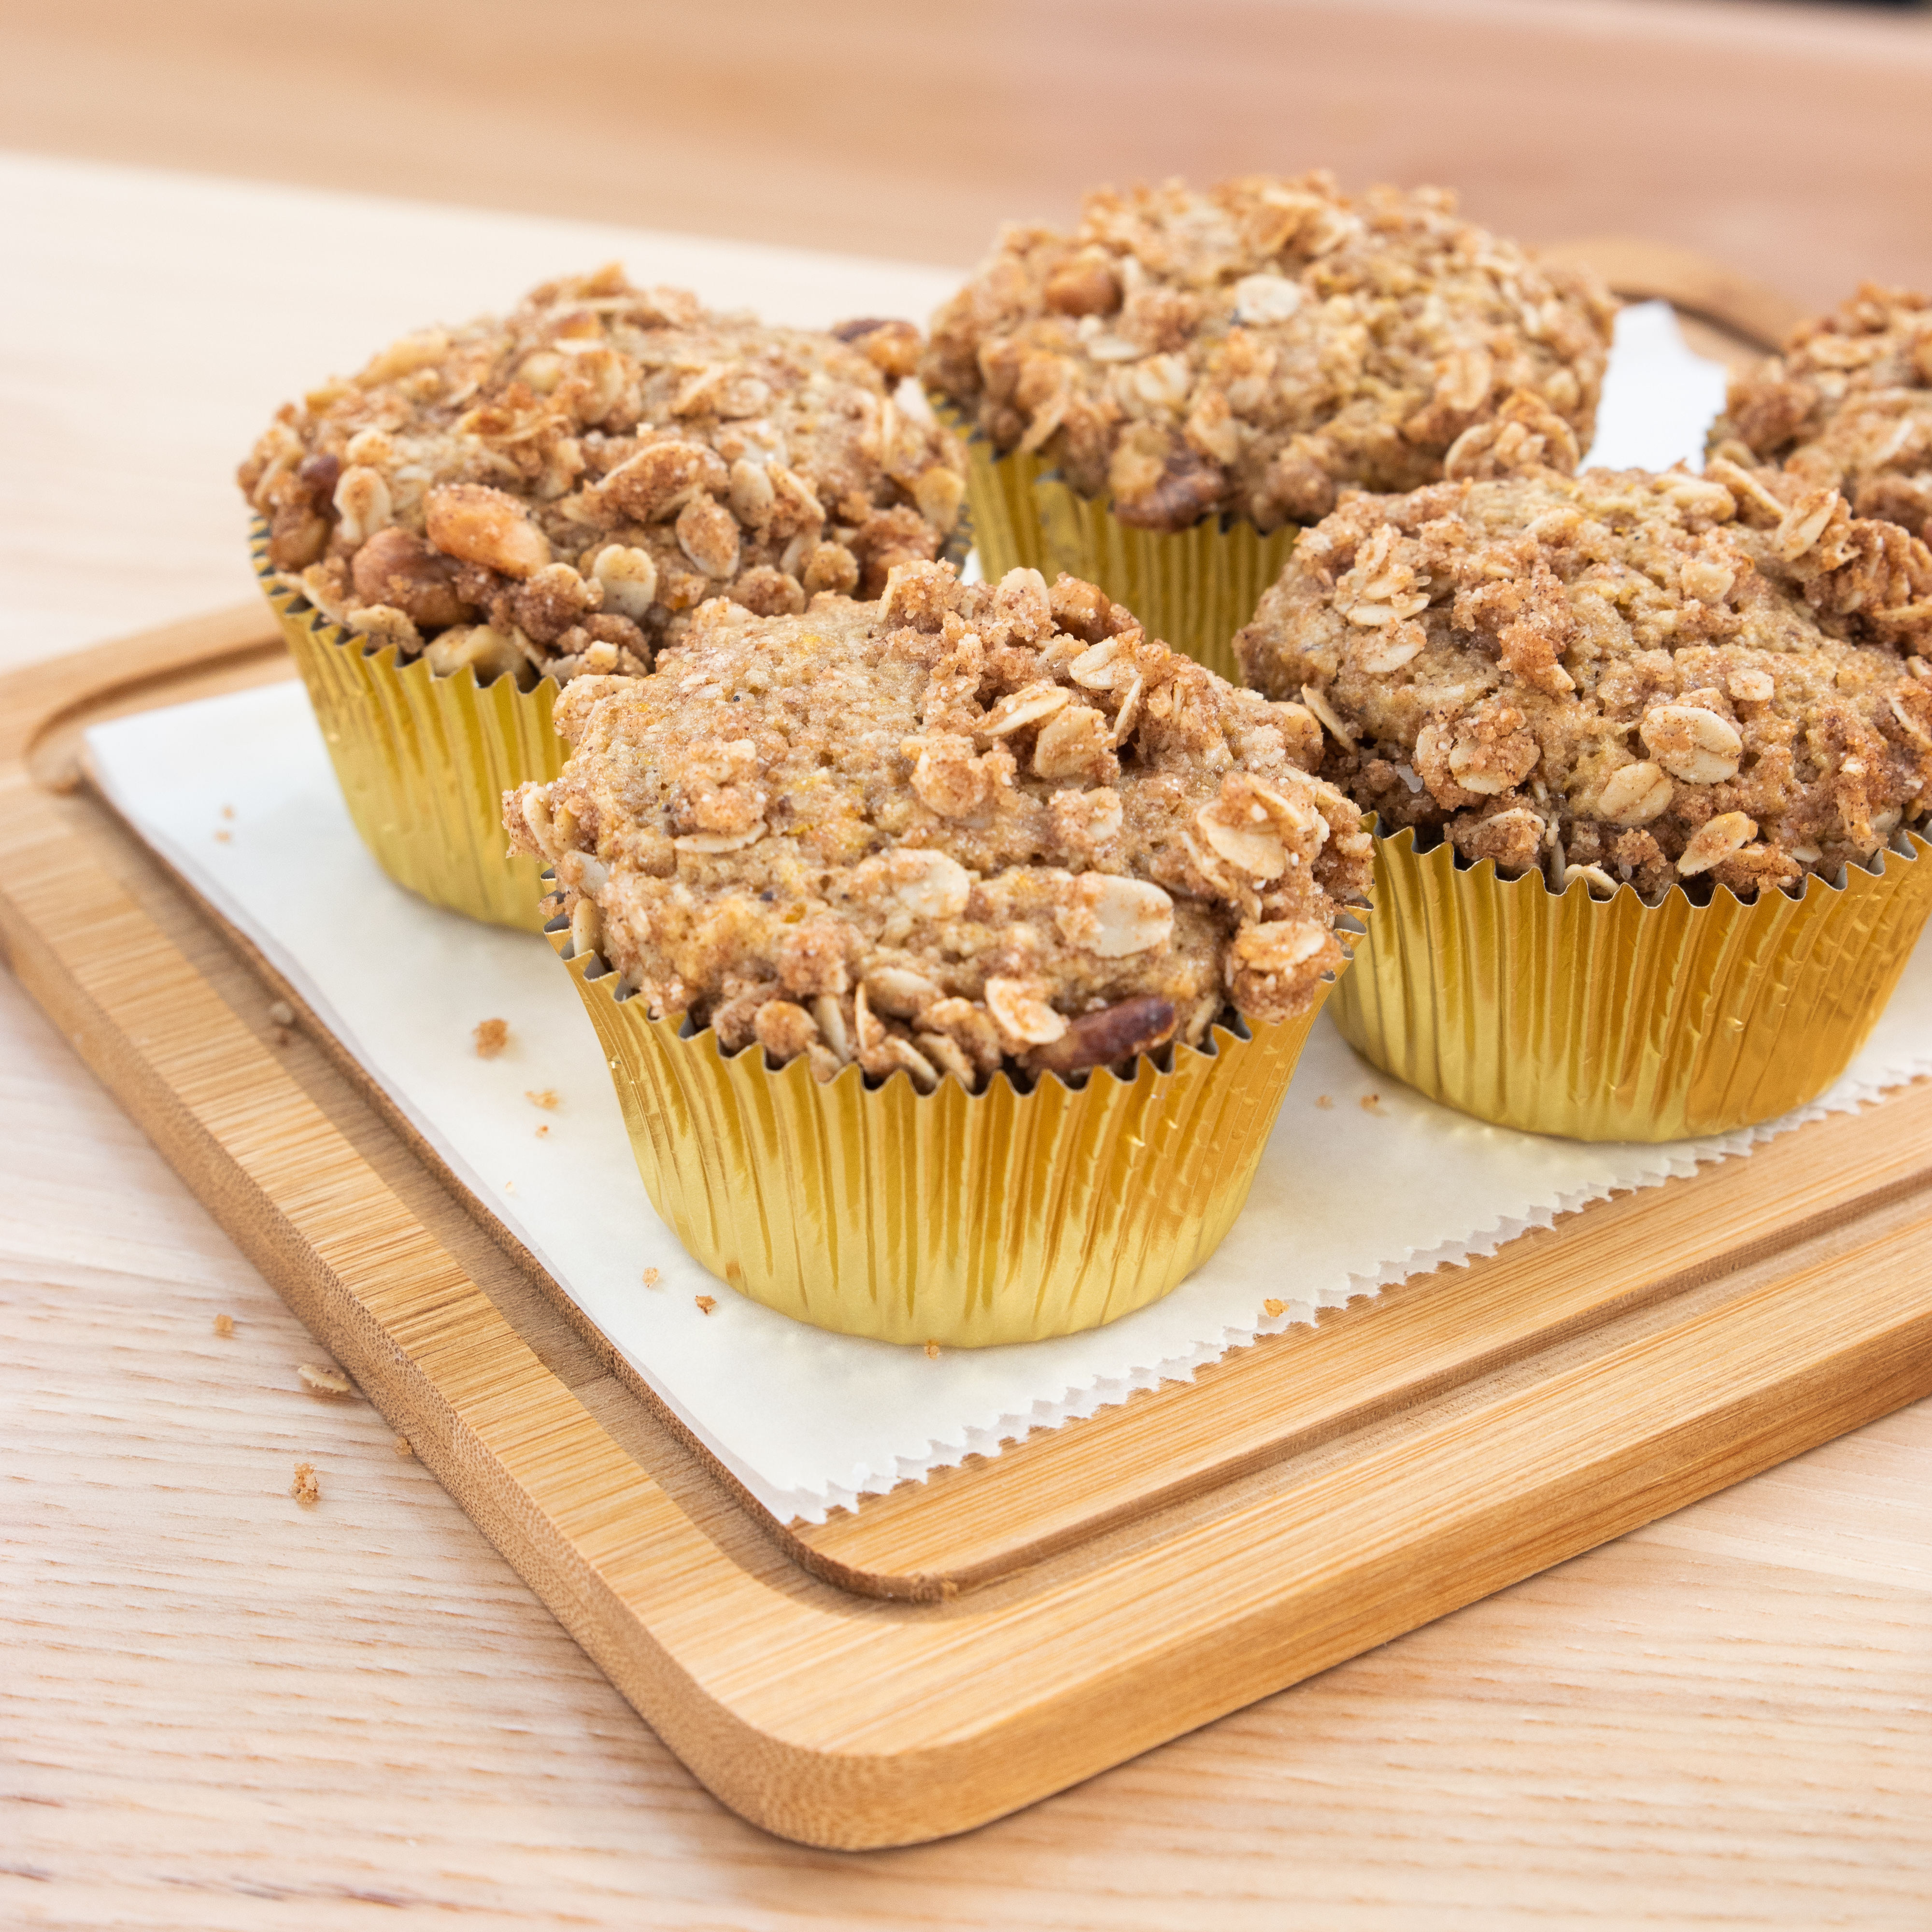 Orange rye muffins from the Cookbook's coffee cart